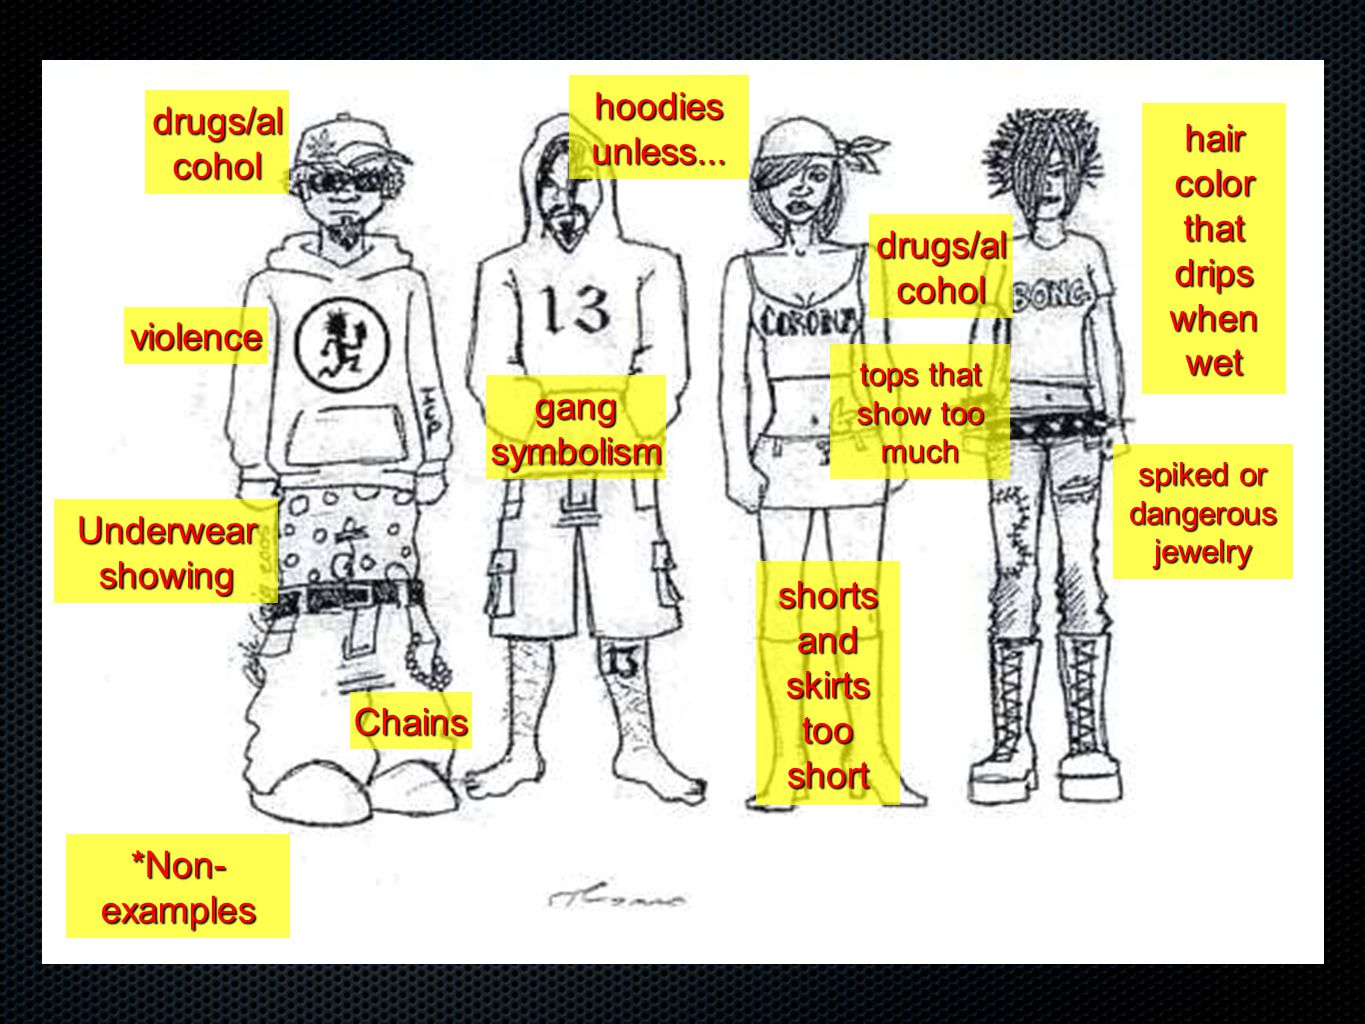 Chains Underwear showing violence drugs/al cohol gang symbolism hoodies unless... tops that show too much drugs/al cohol shorts and skirts too short h